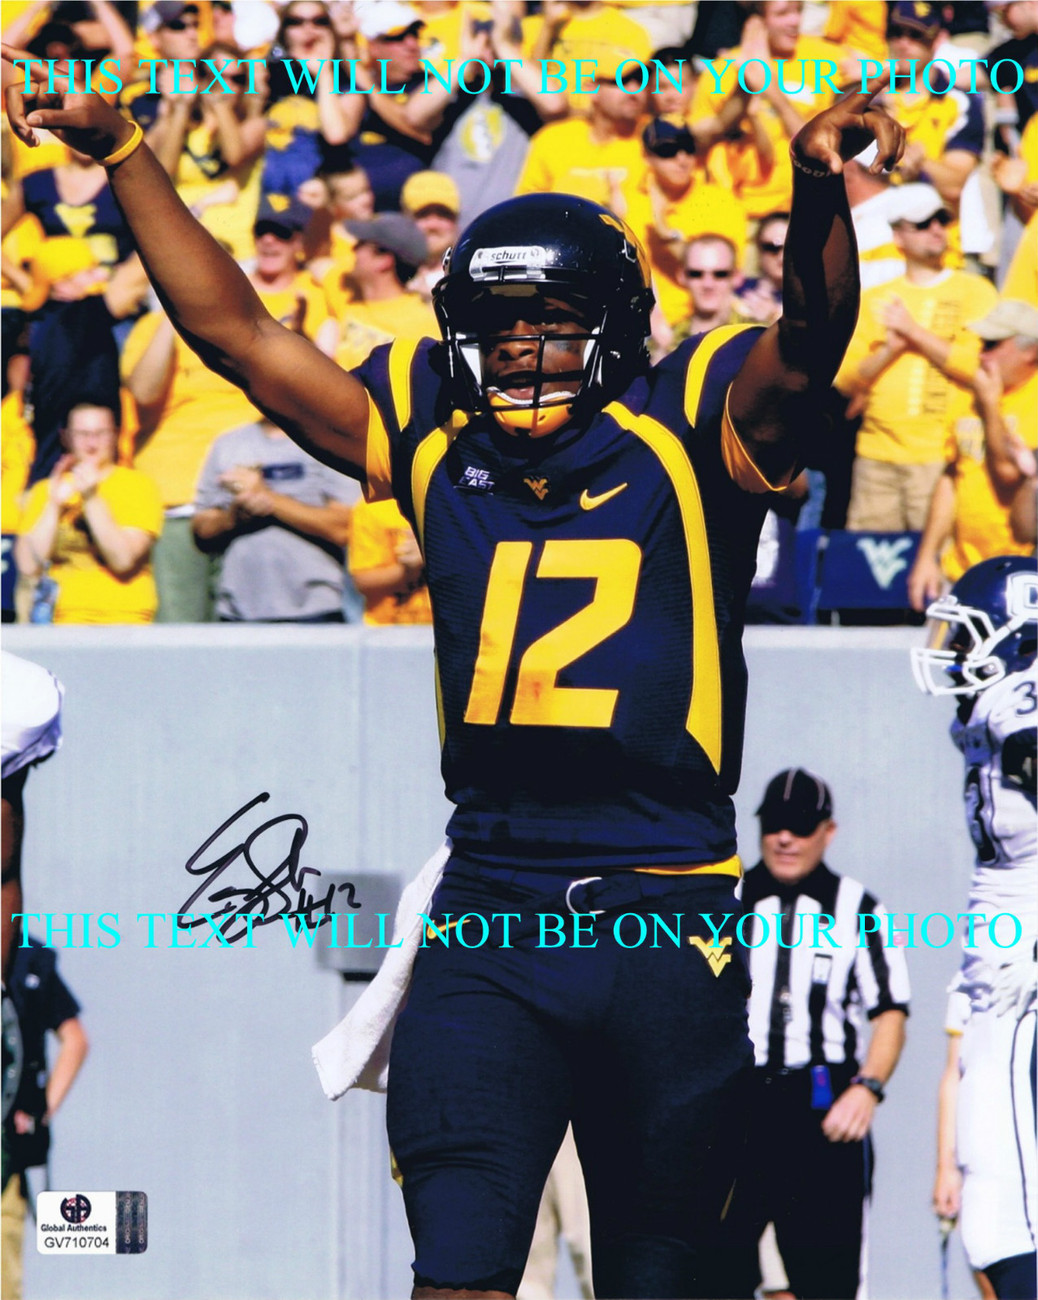 Primary image for EUGENE GENO SMITH SIGNED AUTOGRAPHED AUTO 8x10 RP PHOTO WEST VIRGINIA QB